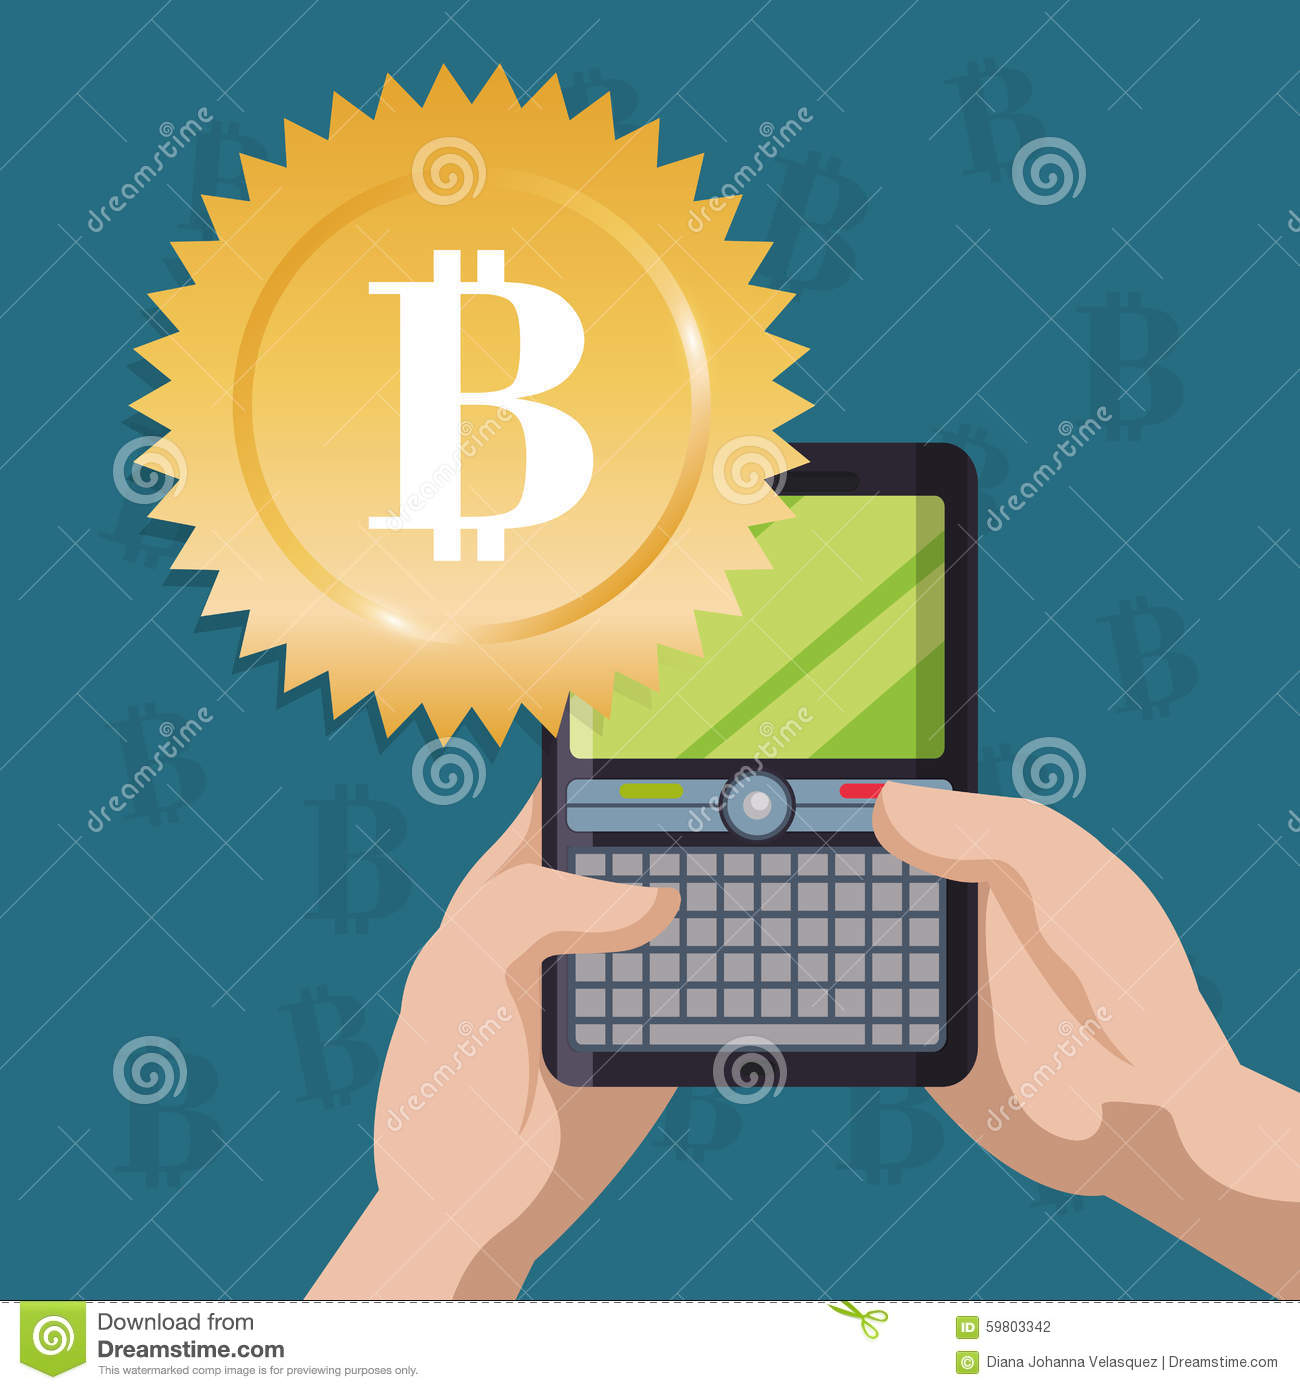 Bitcoin blueprint trade city bitcoin news mining report conference where stephen was invited to be a guest speaker and to meet loc is bitcoin the blueprint for a bankless malvernweather Images